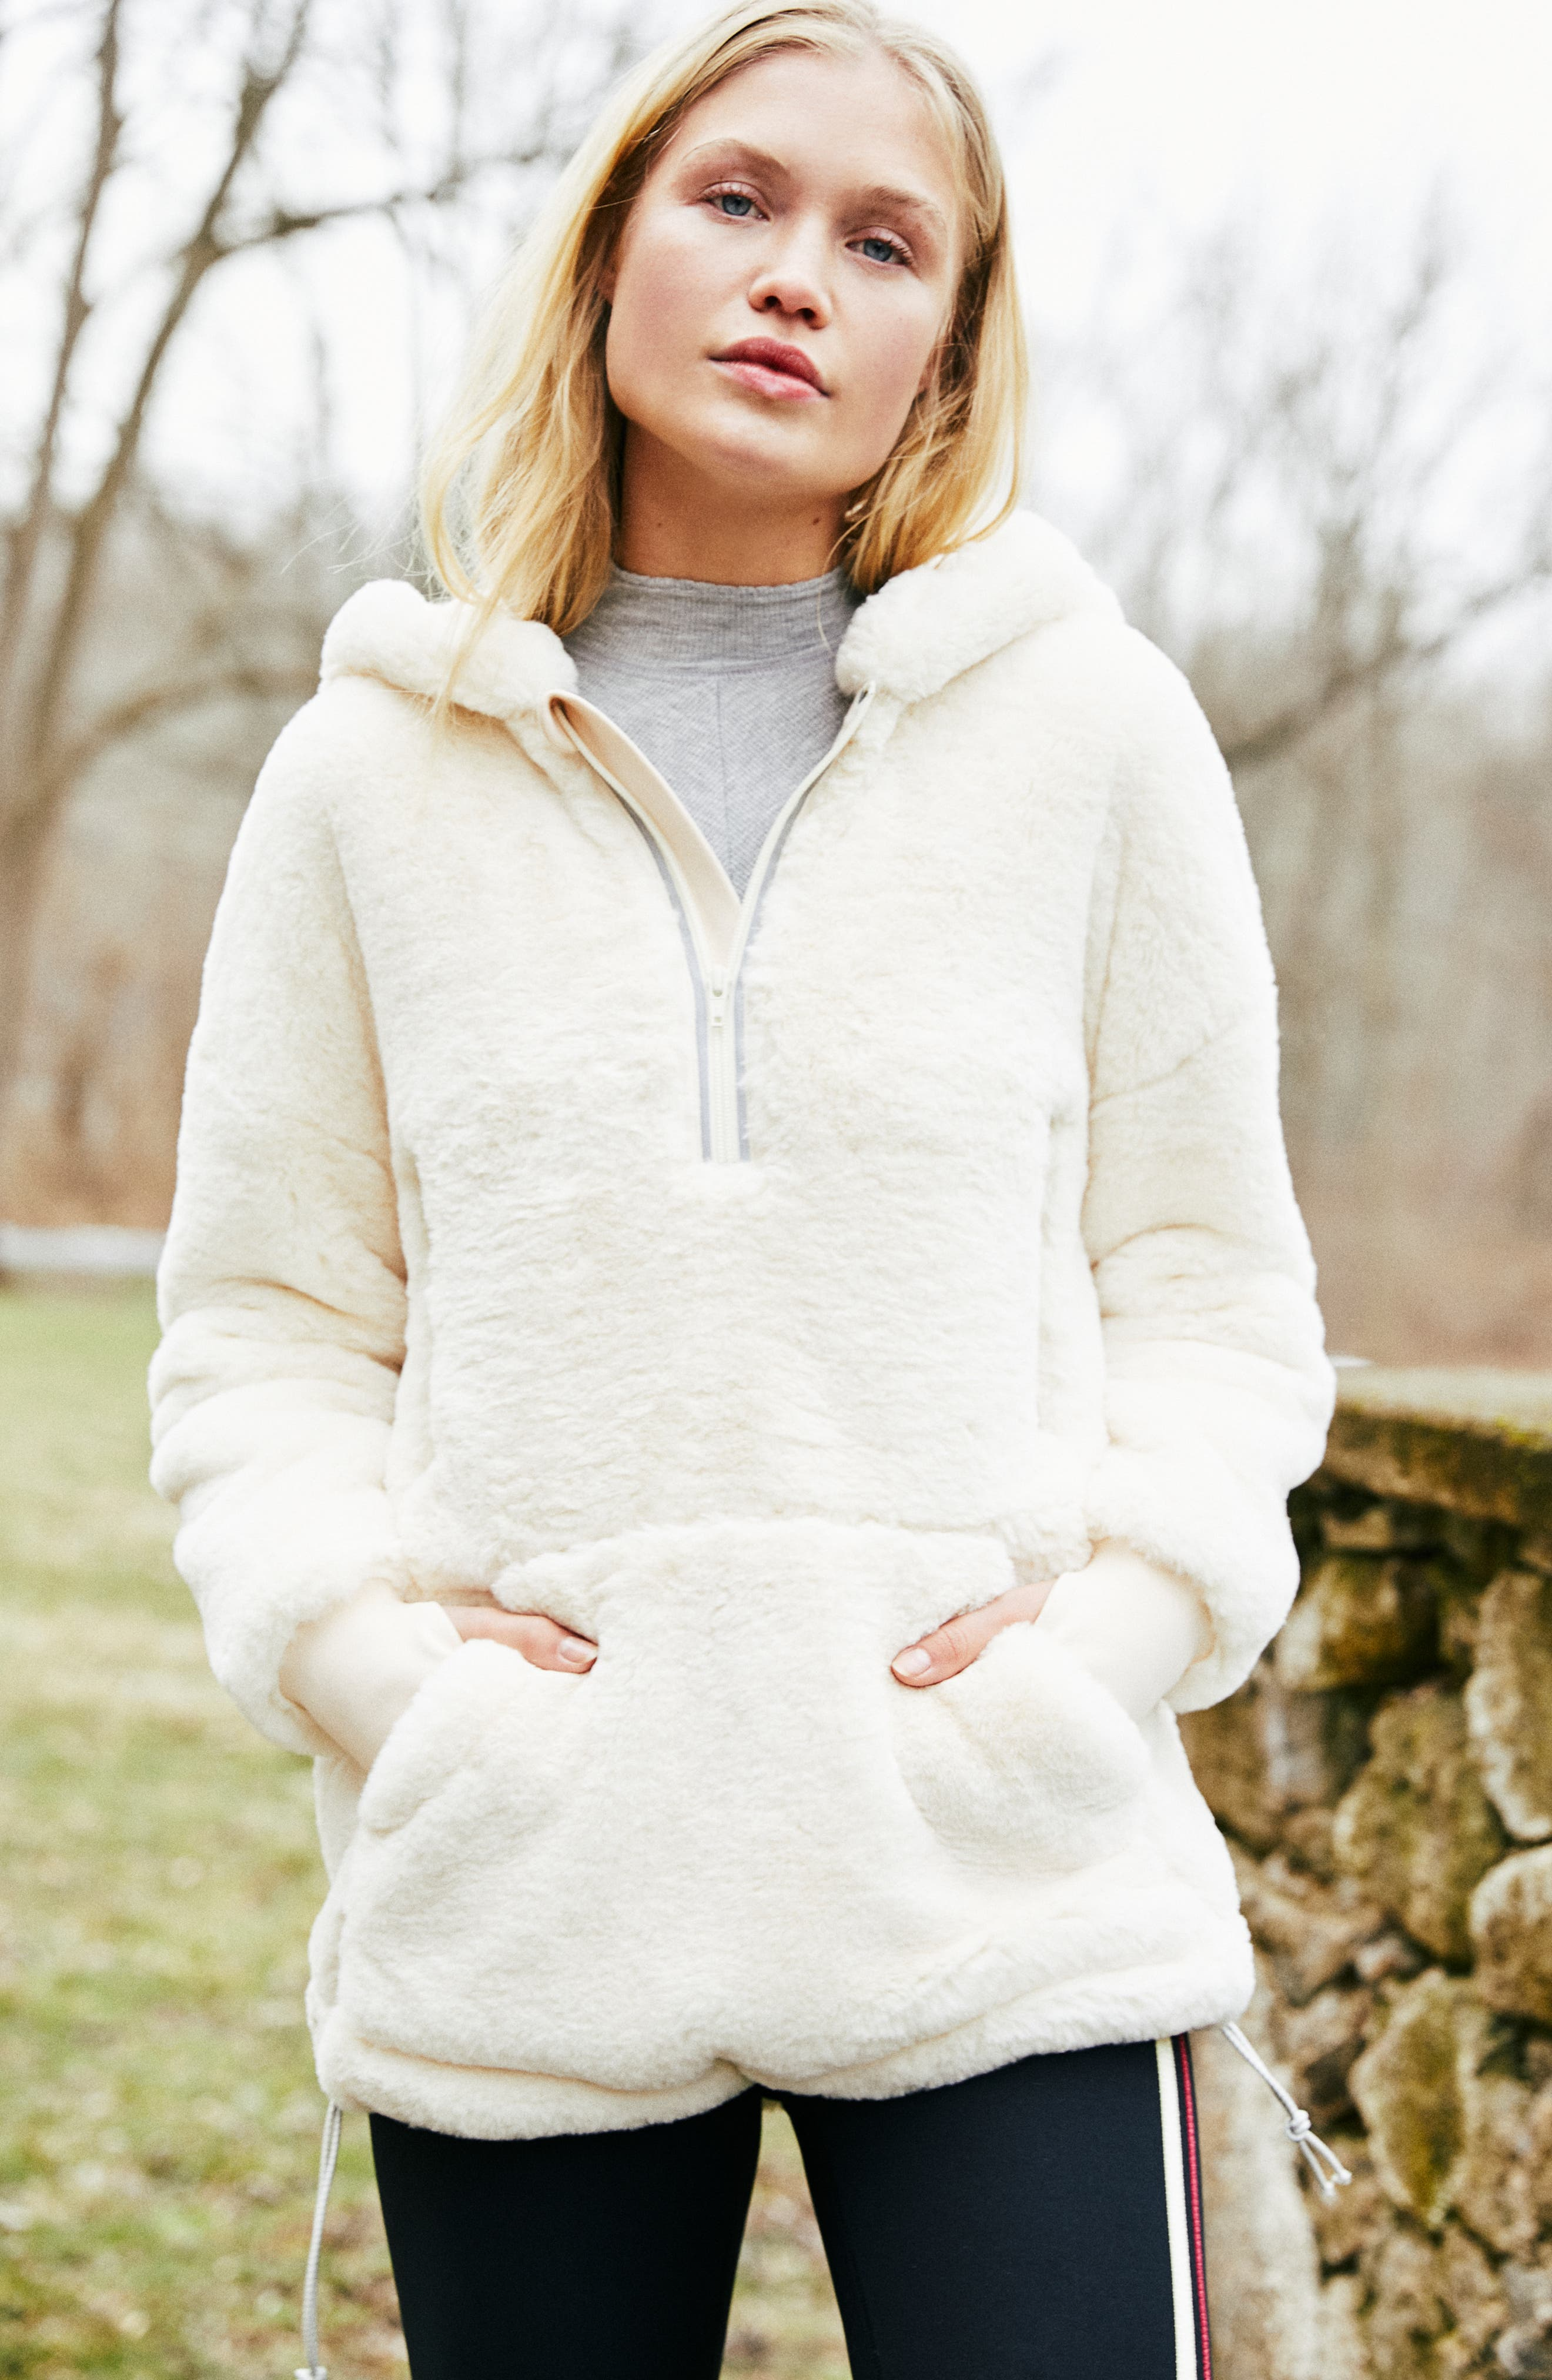 FREE PEOPLE MOVEMENT Free People Fp Movement Off The Record Soft Fleece Hoodie in Beige